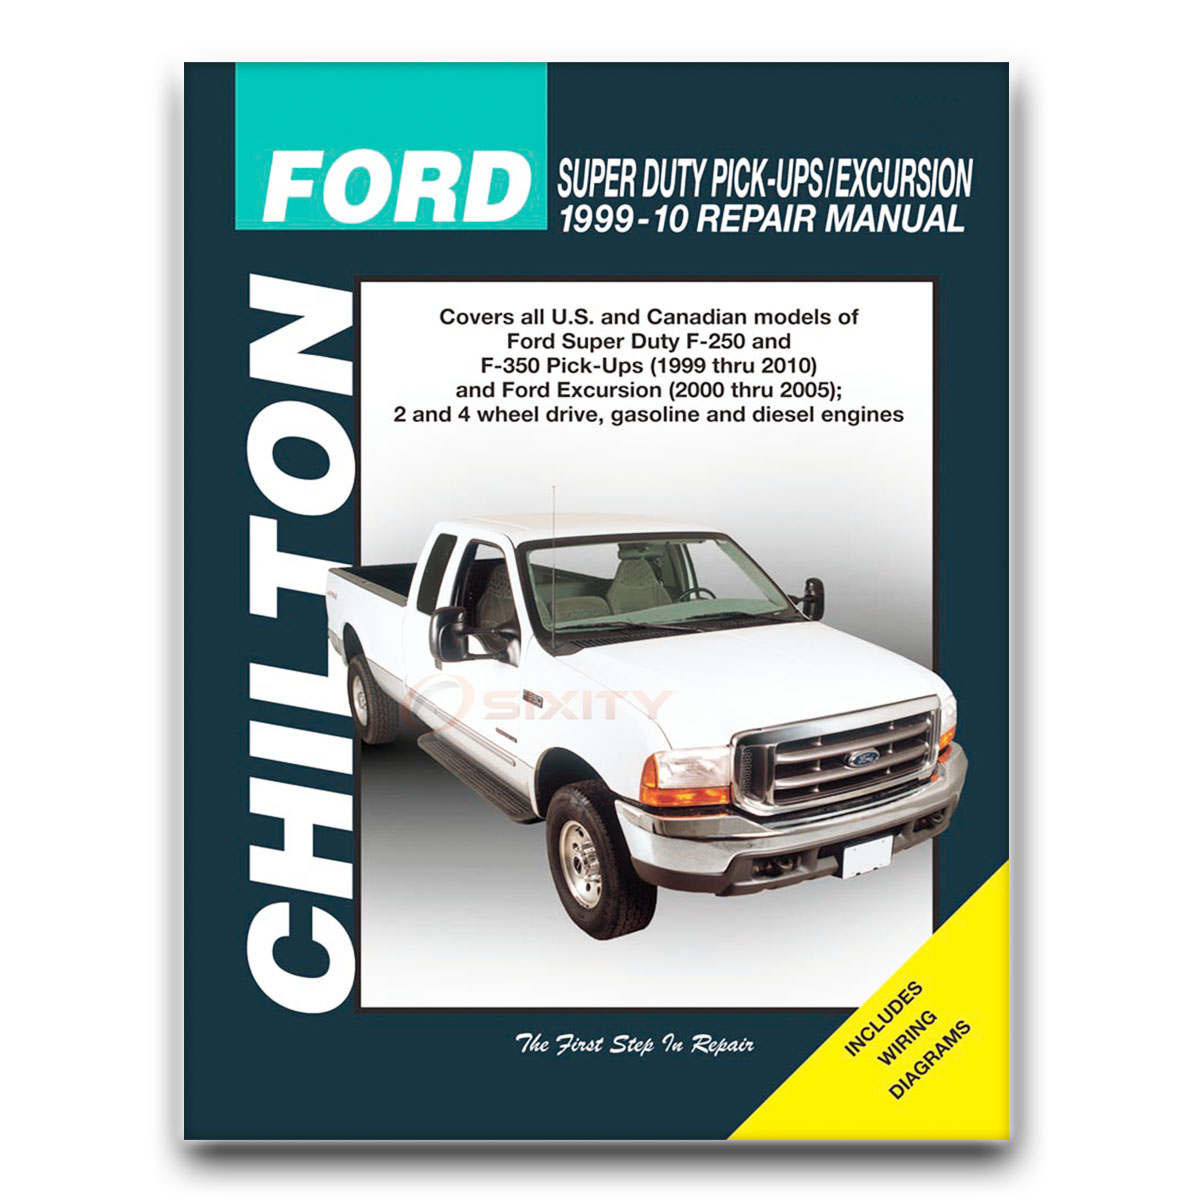 Details About Chilton Repair Manual For 2000 2005 Ford Excursion Shop Service Garage Hk